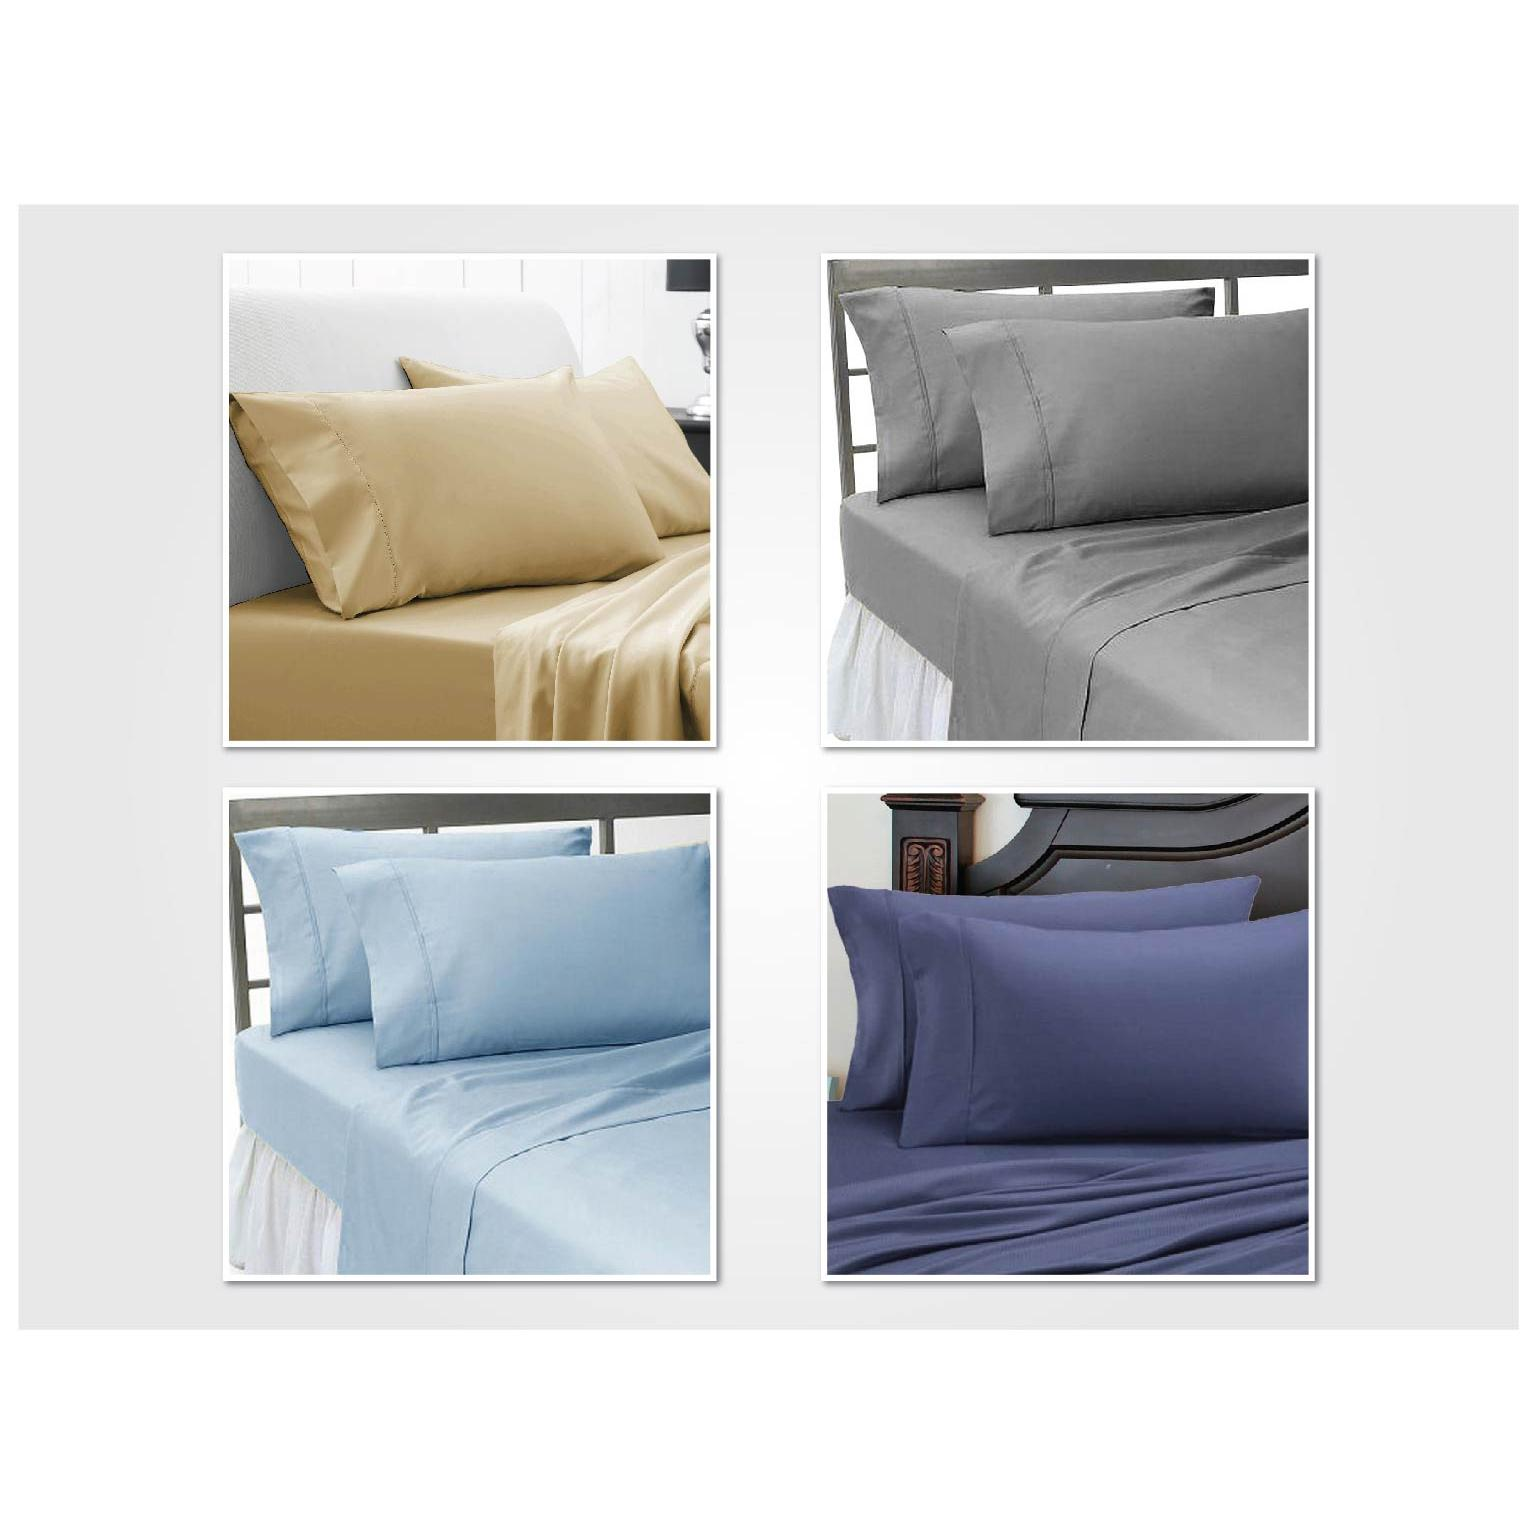 Egyptian Cotton Sheets | Egyptian Cotton Bedding | Bloomingdales Sheets